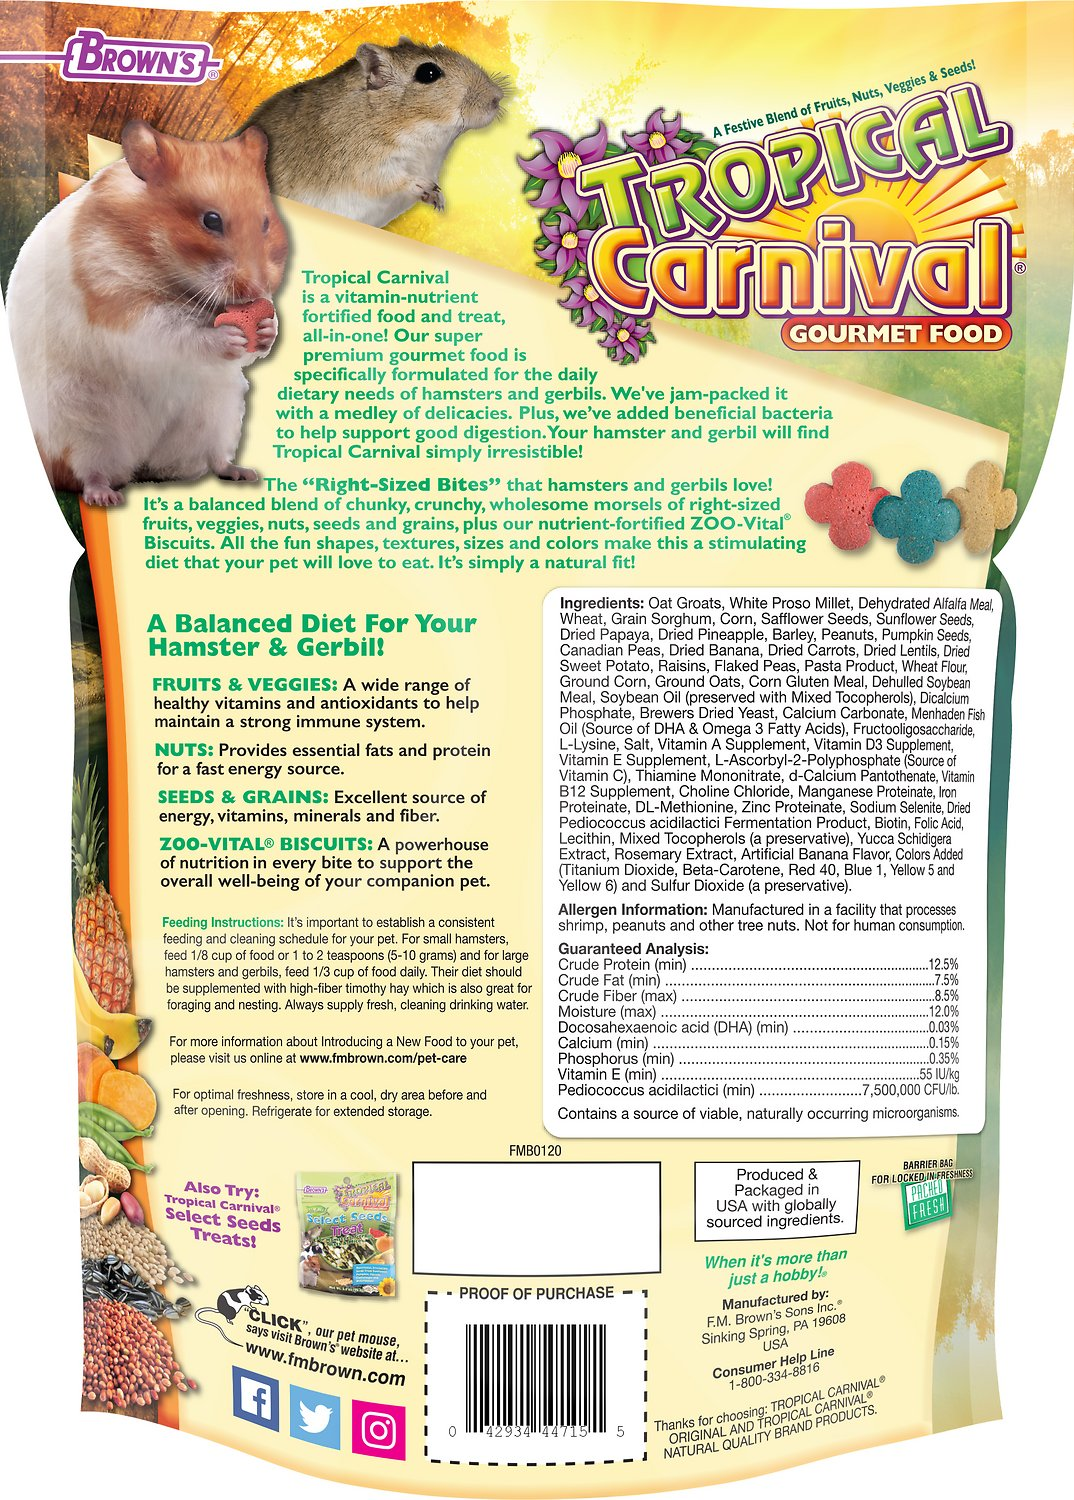 Brown's Tropical Carnival Hamster & Gerbil Food, 2-lb bag